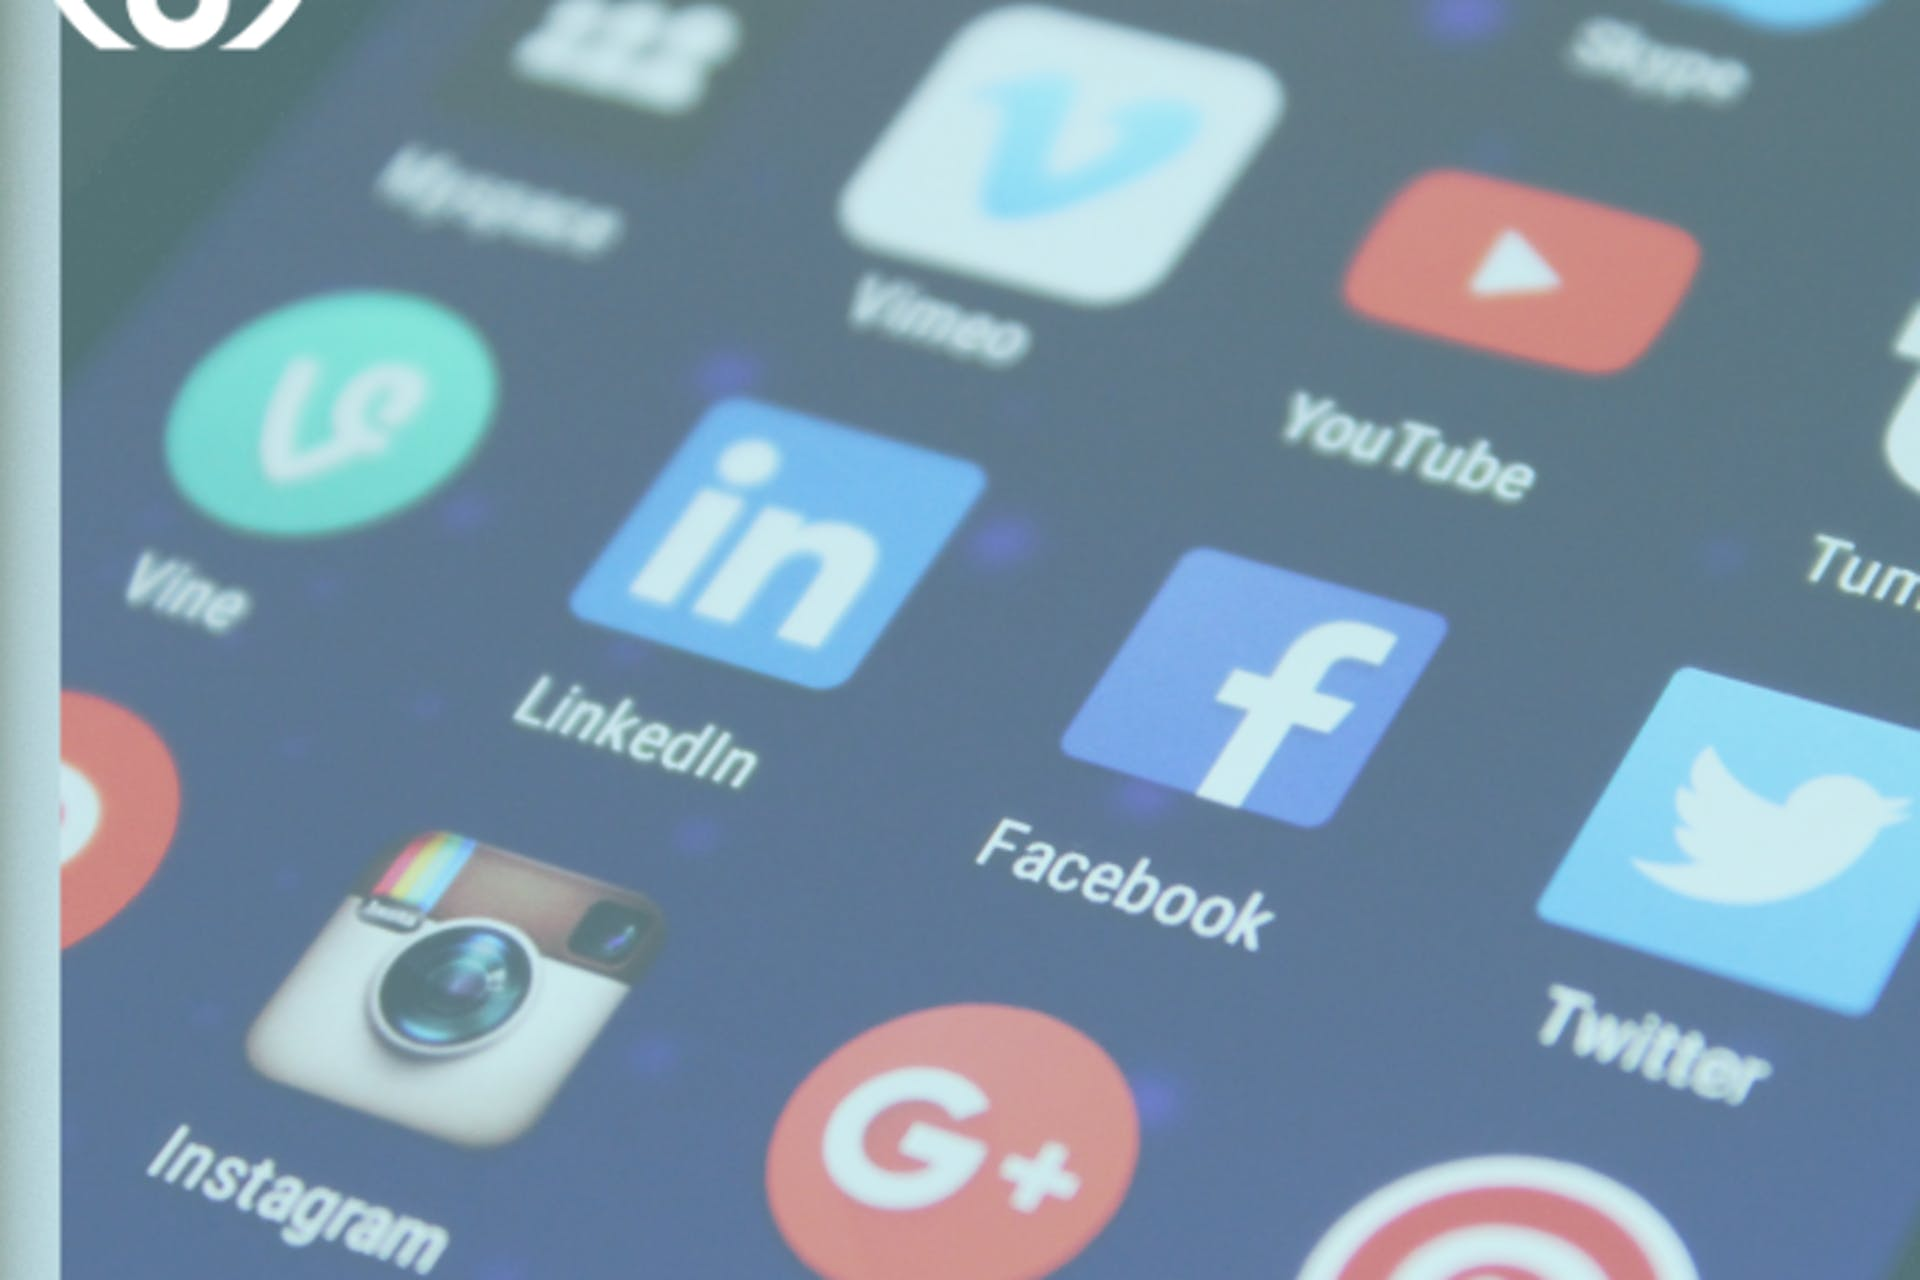 A screen with numerous social media and cell phone icons on it.